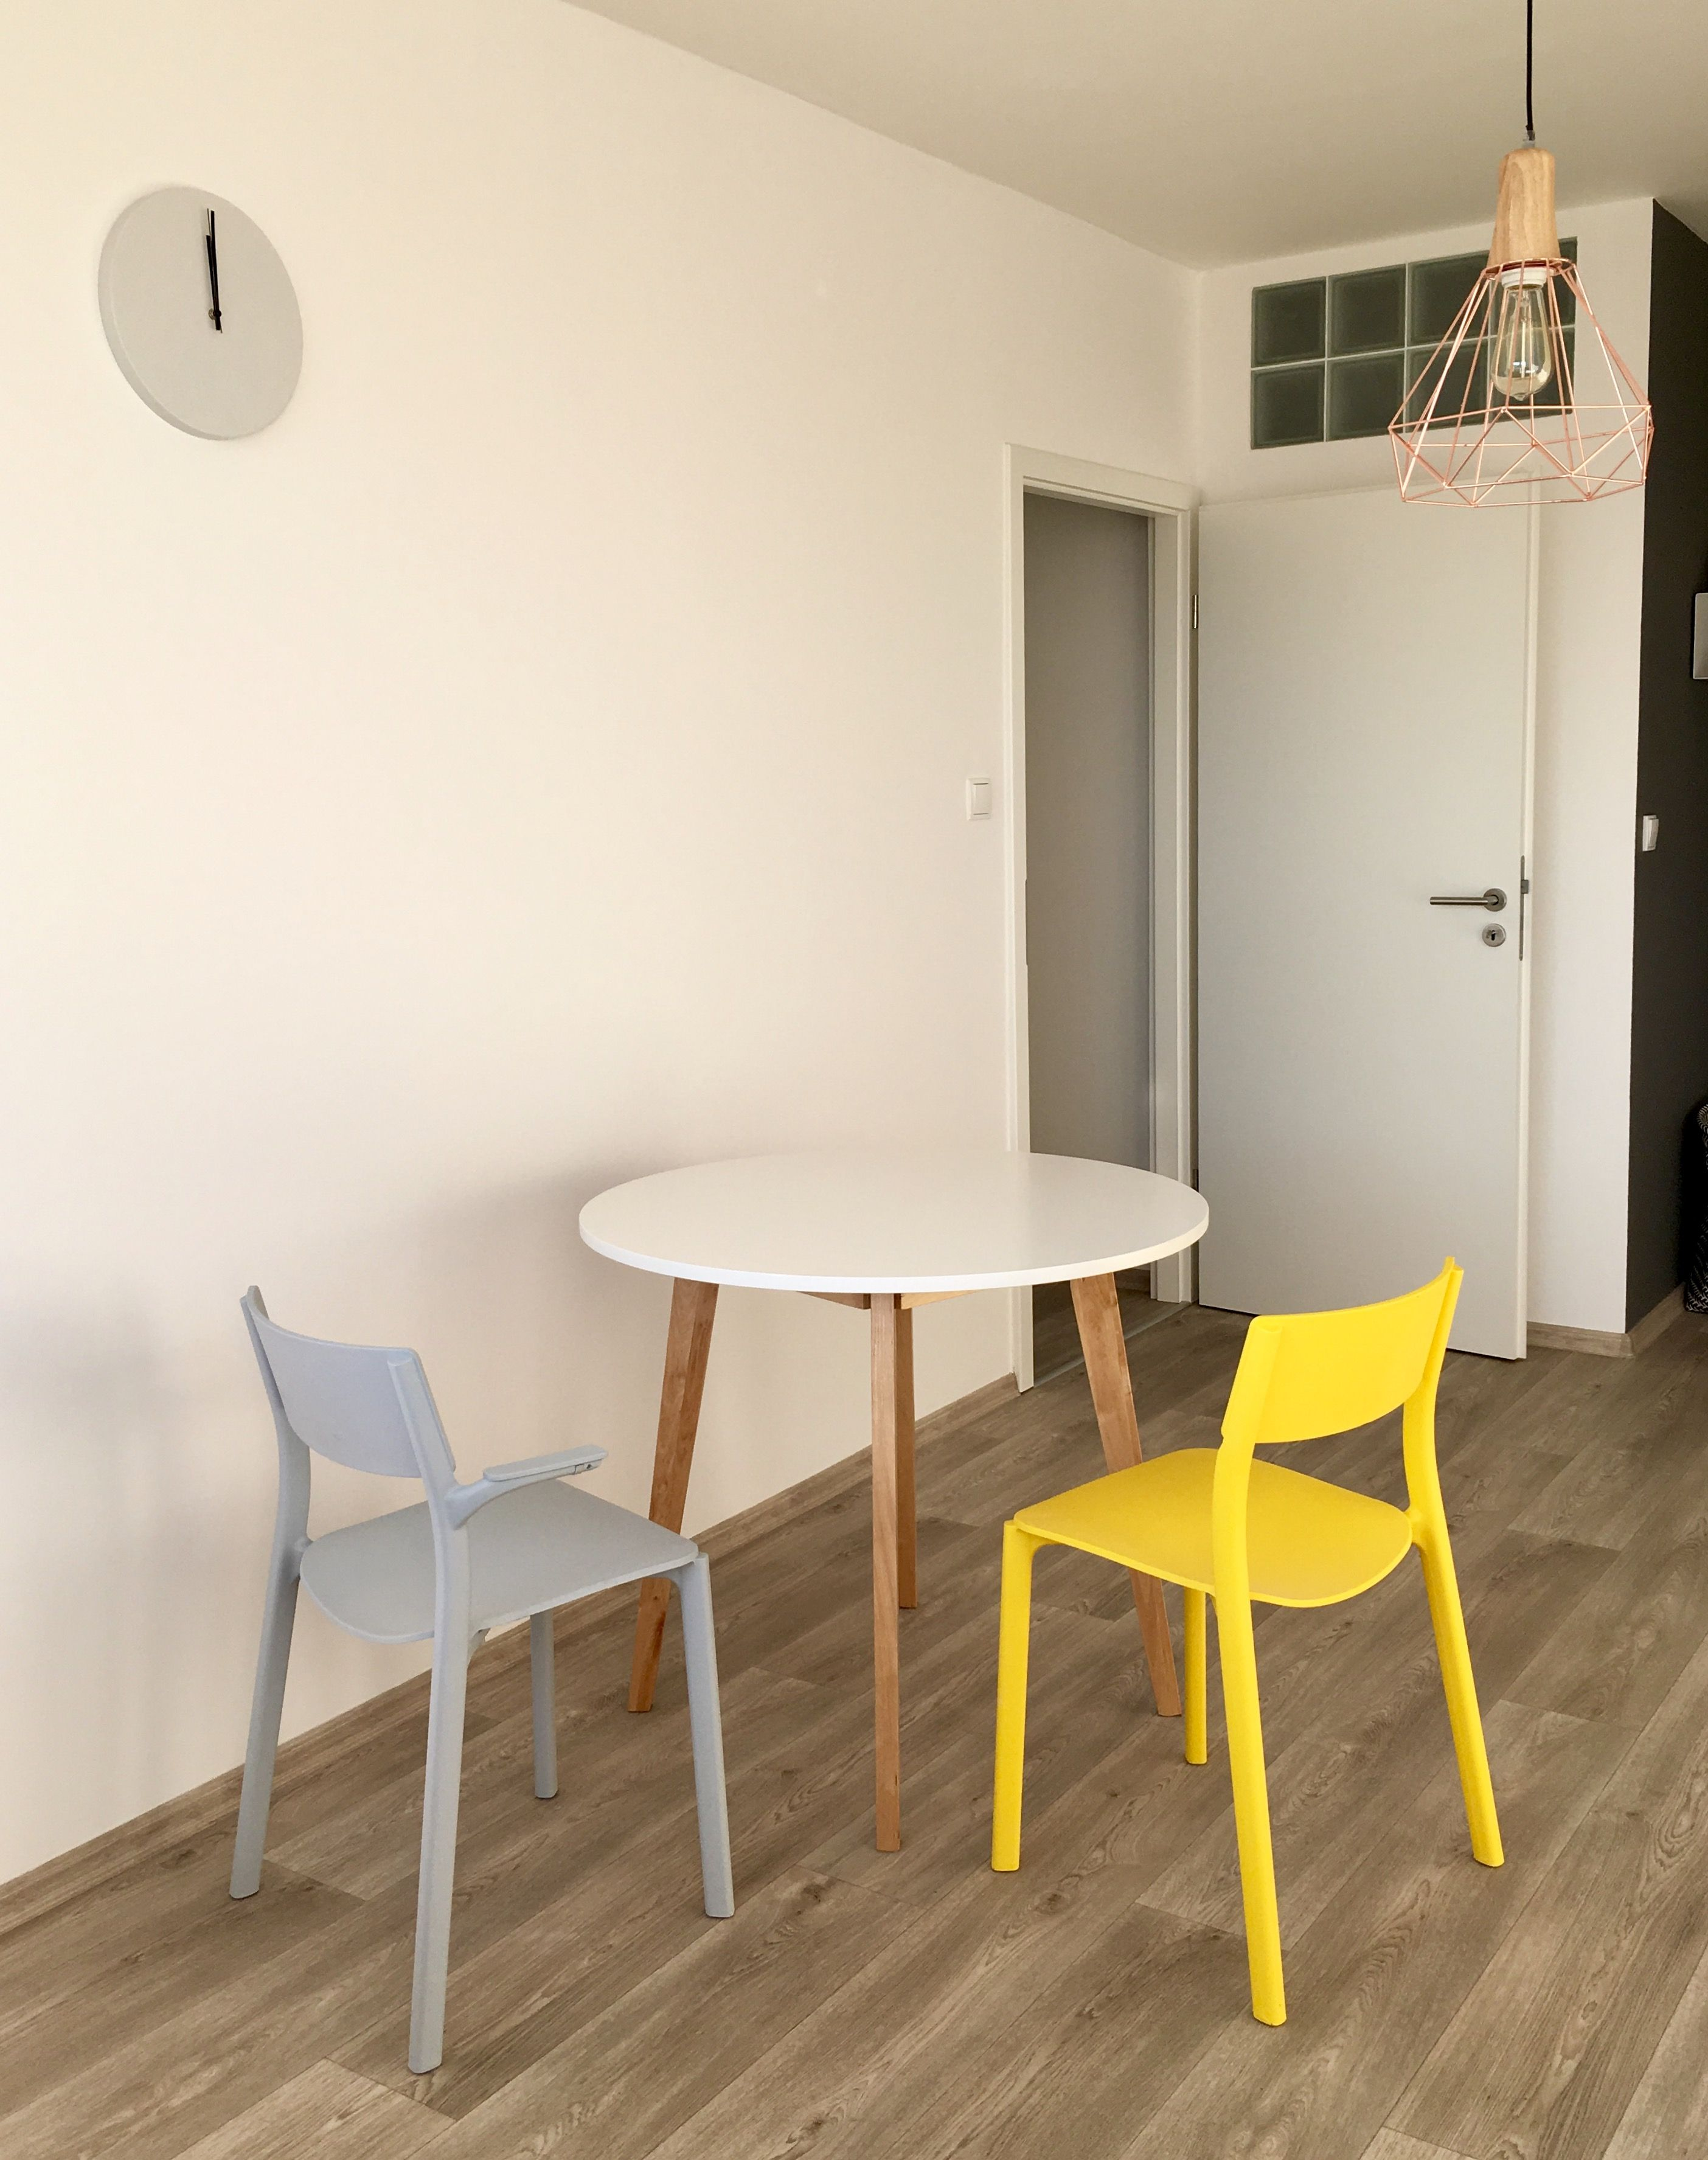 Sedie Janinge Ikea Ikea Chair Janinge Home Design Ikea Chair Chair House Design